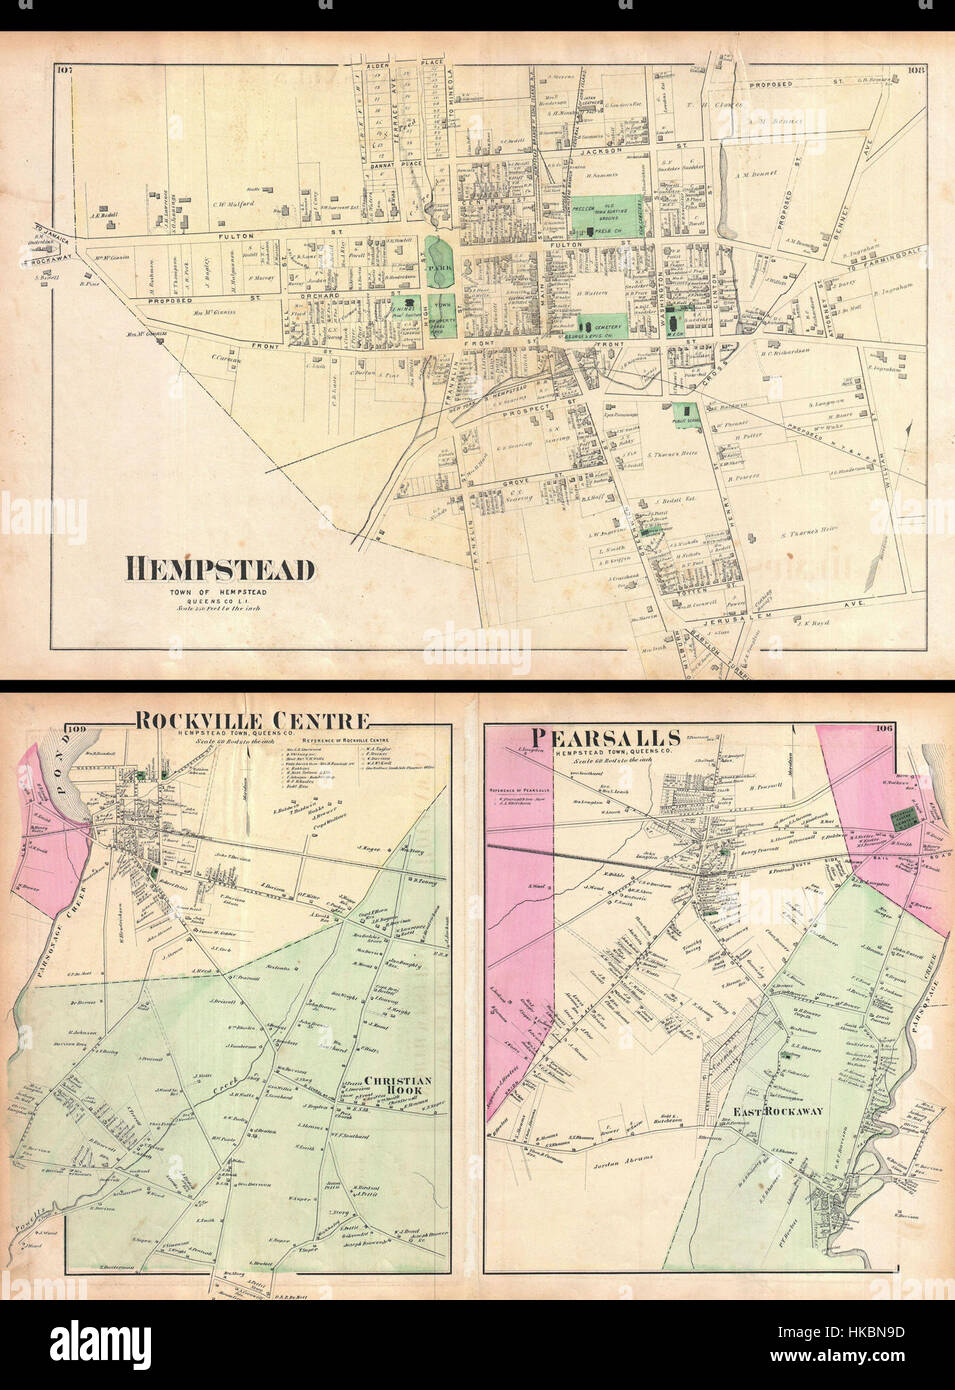 Map Of New York Towns.1873 Beers Map Of The Towns Of Hempstead Rockville And Pearsalls